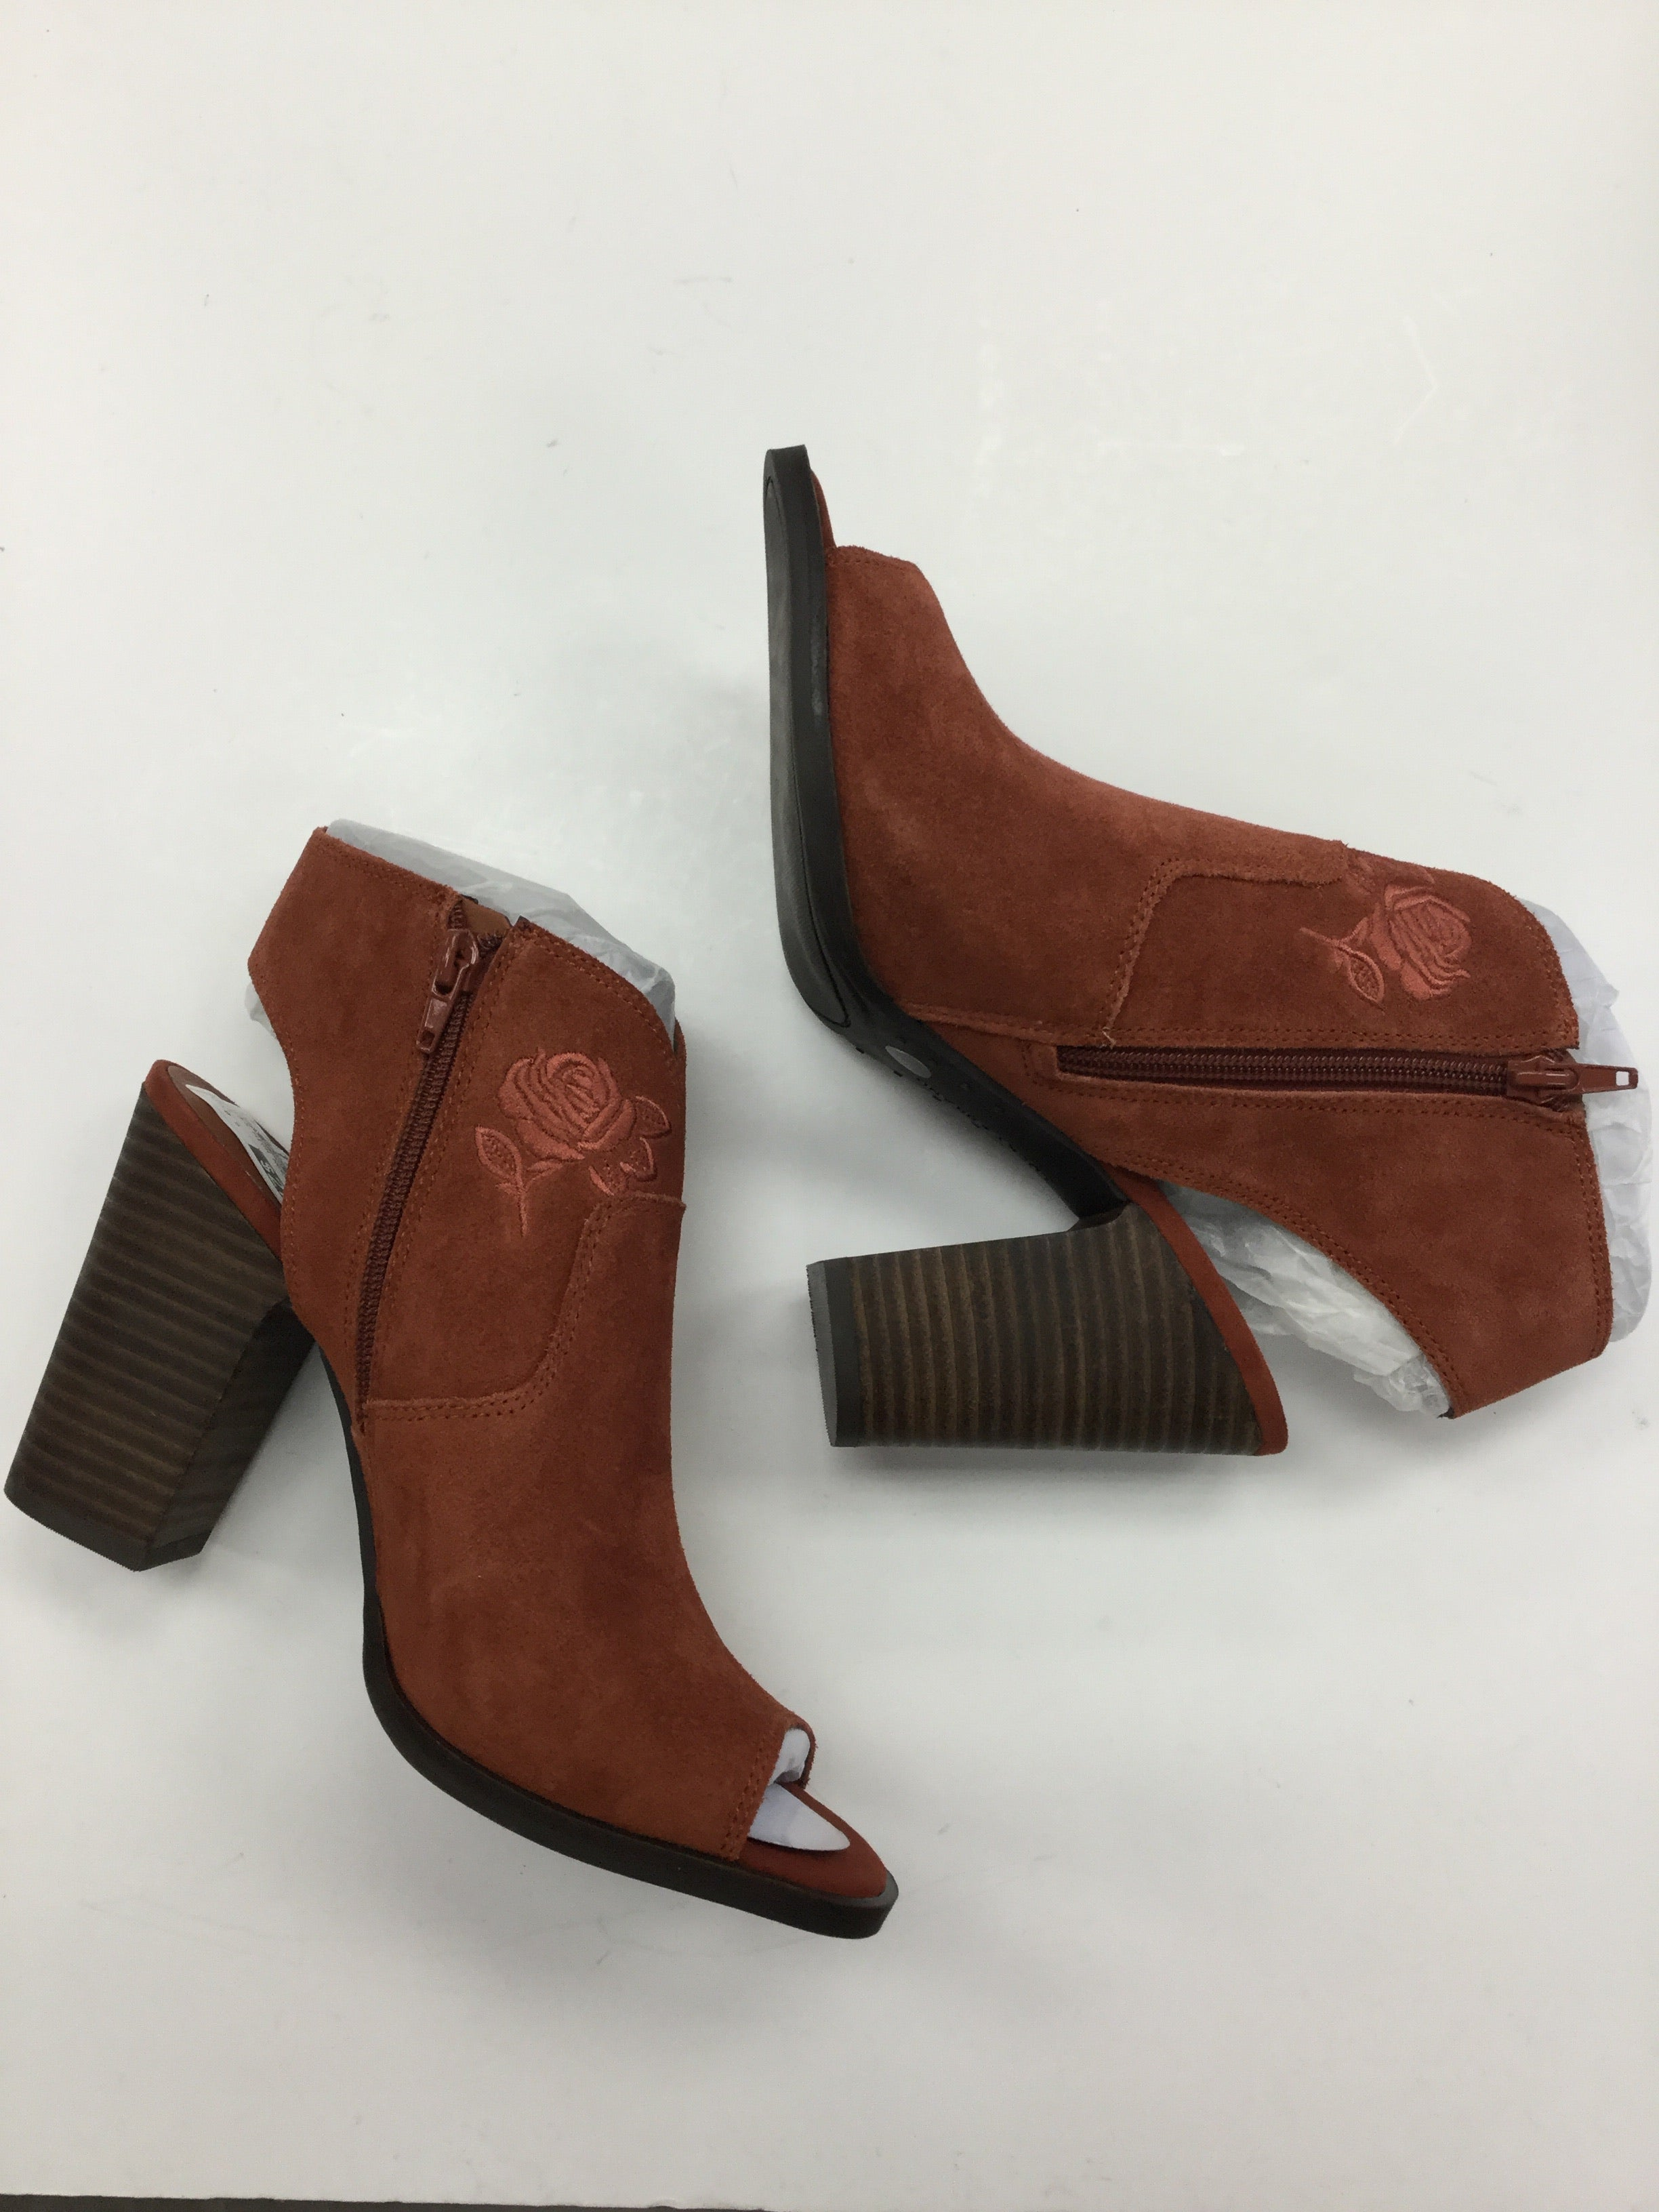 Primary Photo - BRAND: LUCKY BRAND <BR>STYLE: SHOES HIGH HEEL <BR>COLOR: RUST <BR>SIZE: 9.5 <BR>SKU: 155-15545-206550